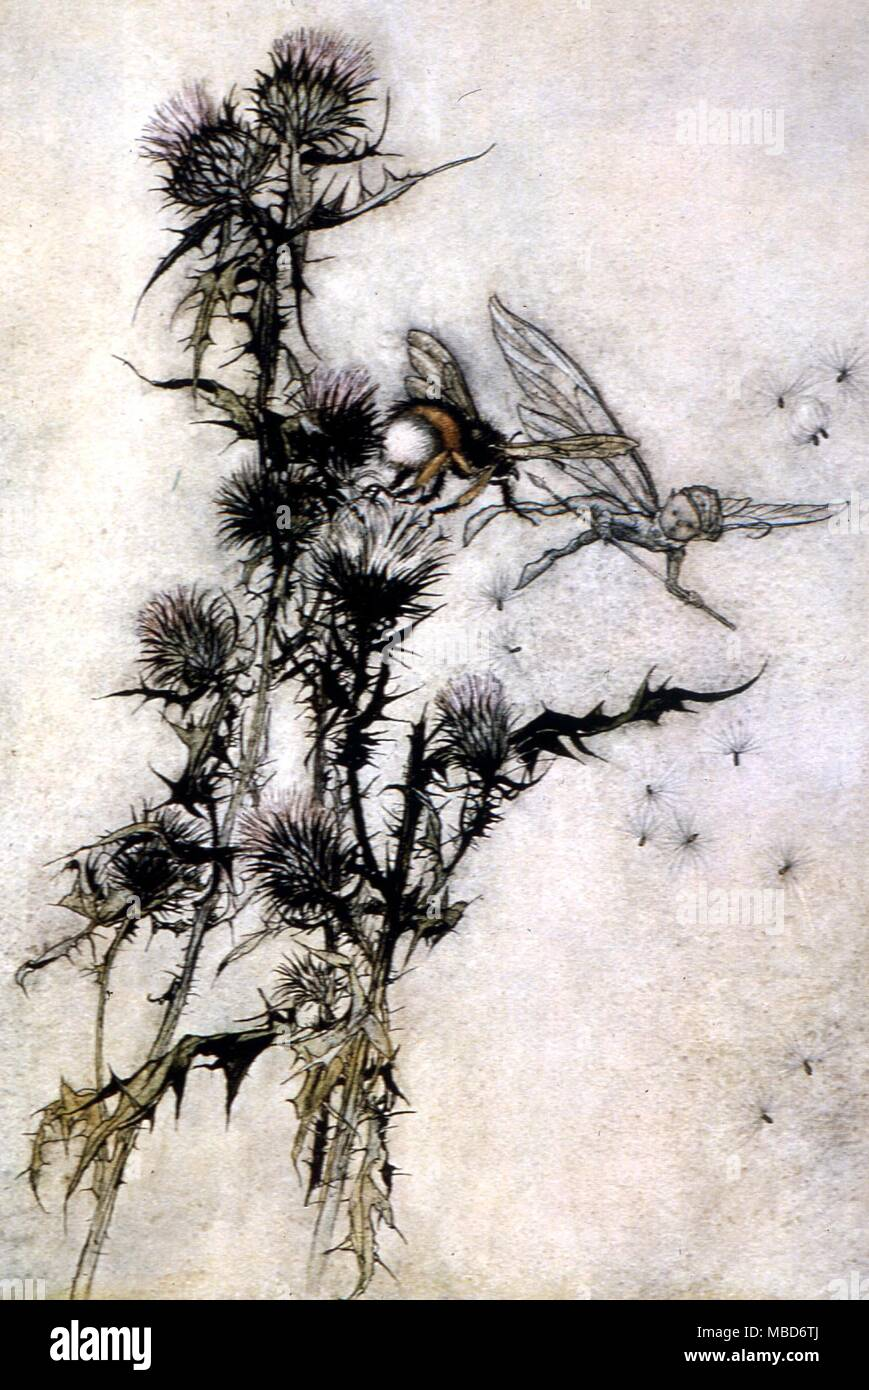 Midsummer Night's Dream - Kill me a red-hipped humble-bee on the top of a thistle.  Illustration by Arthur Rackham for the 1908 edition of A Midsummer Night's Dream by Shakespeare - Stock Image